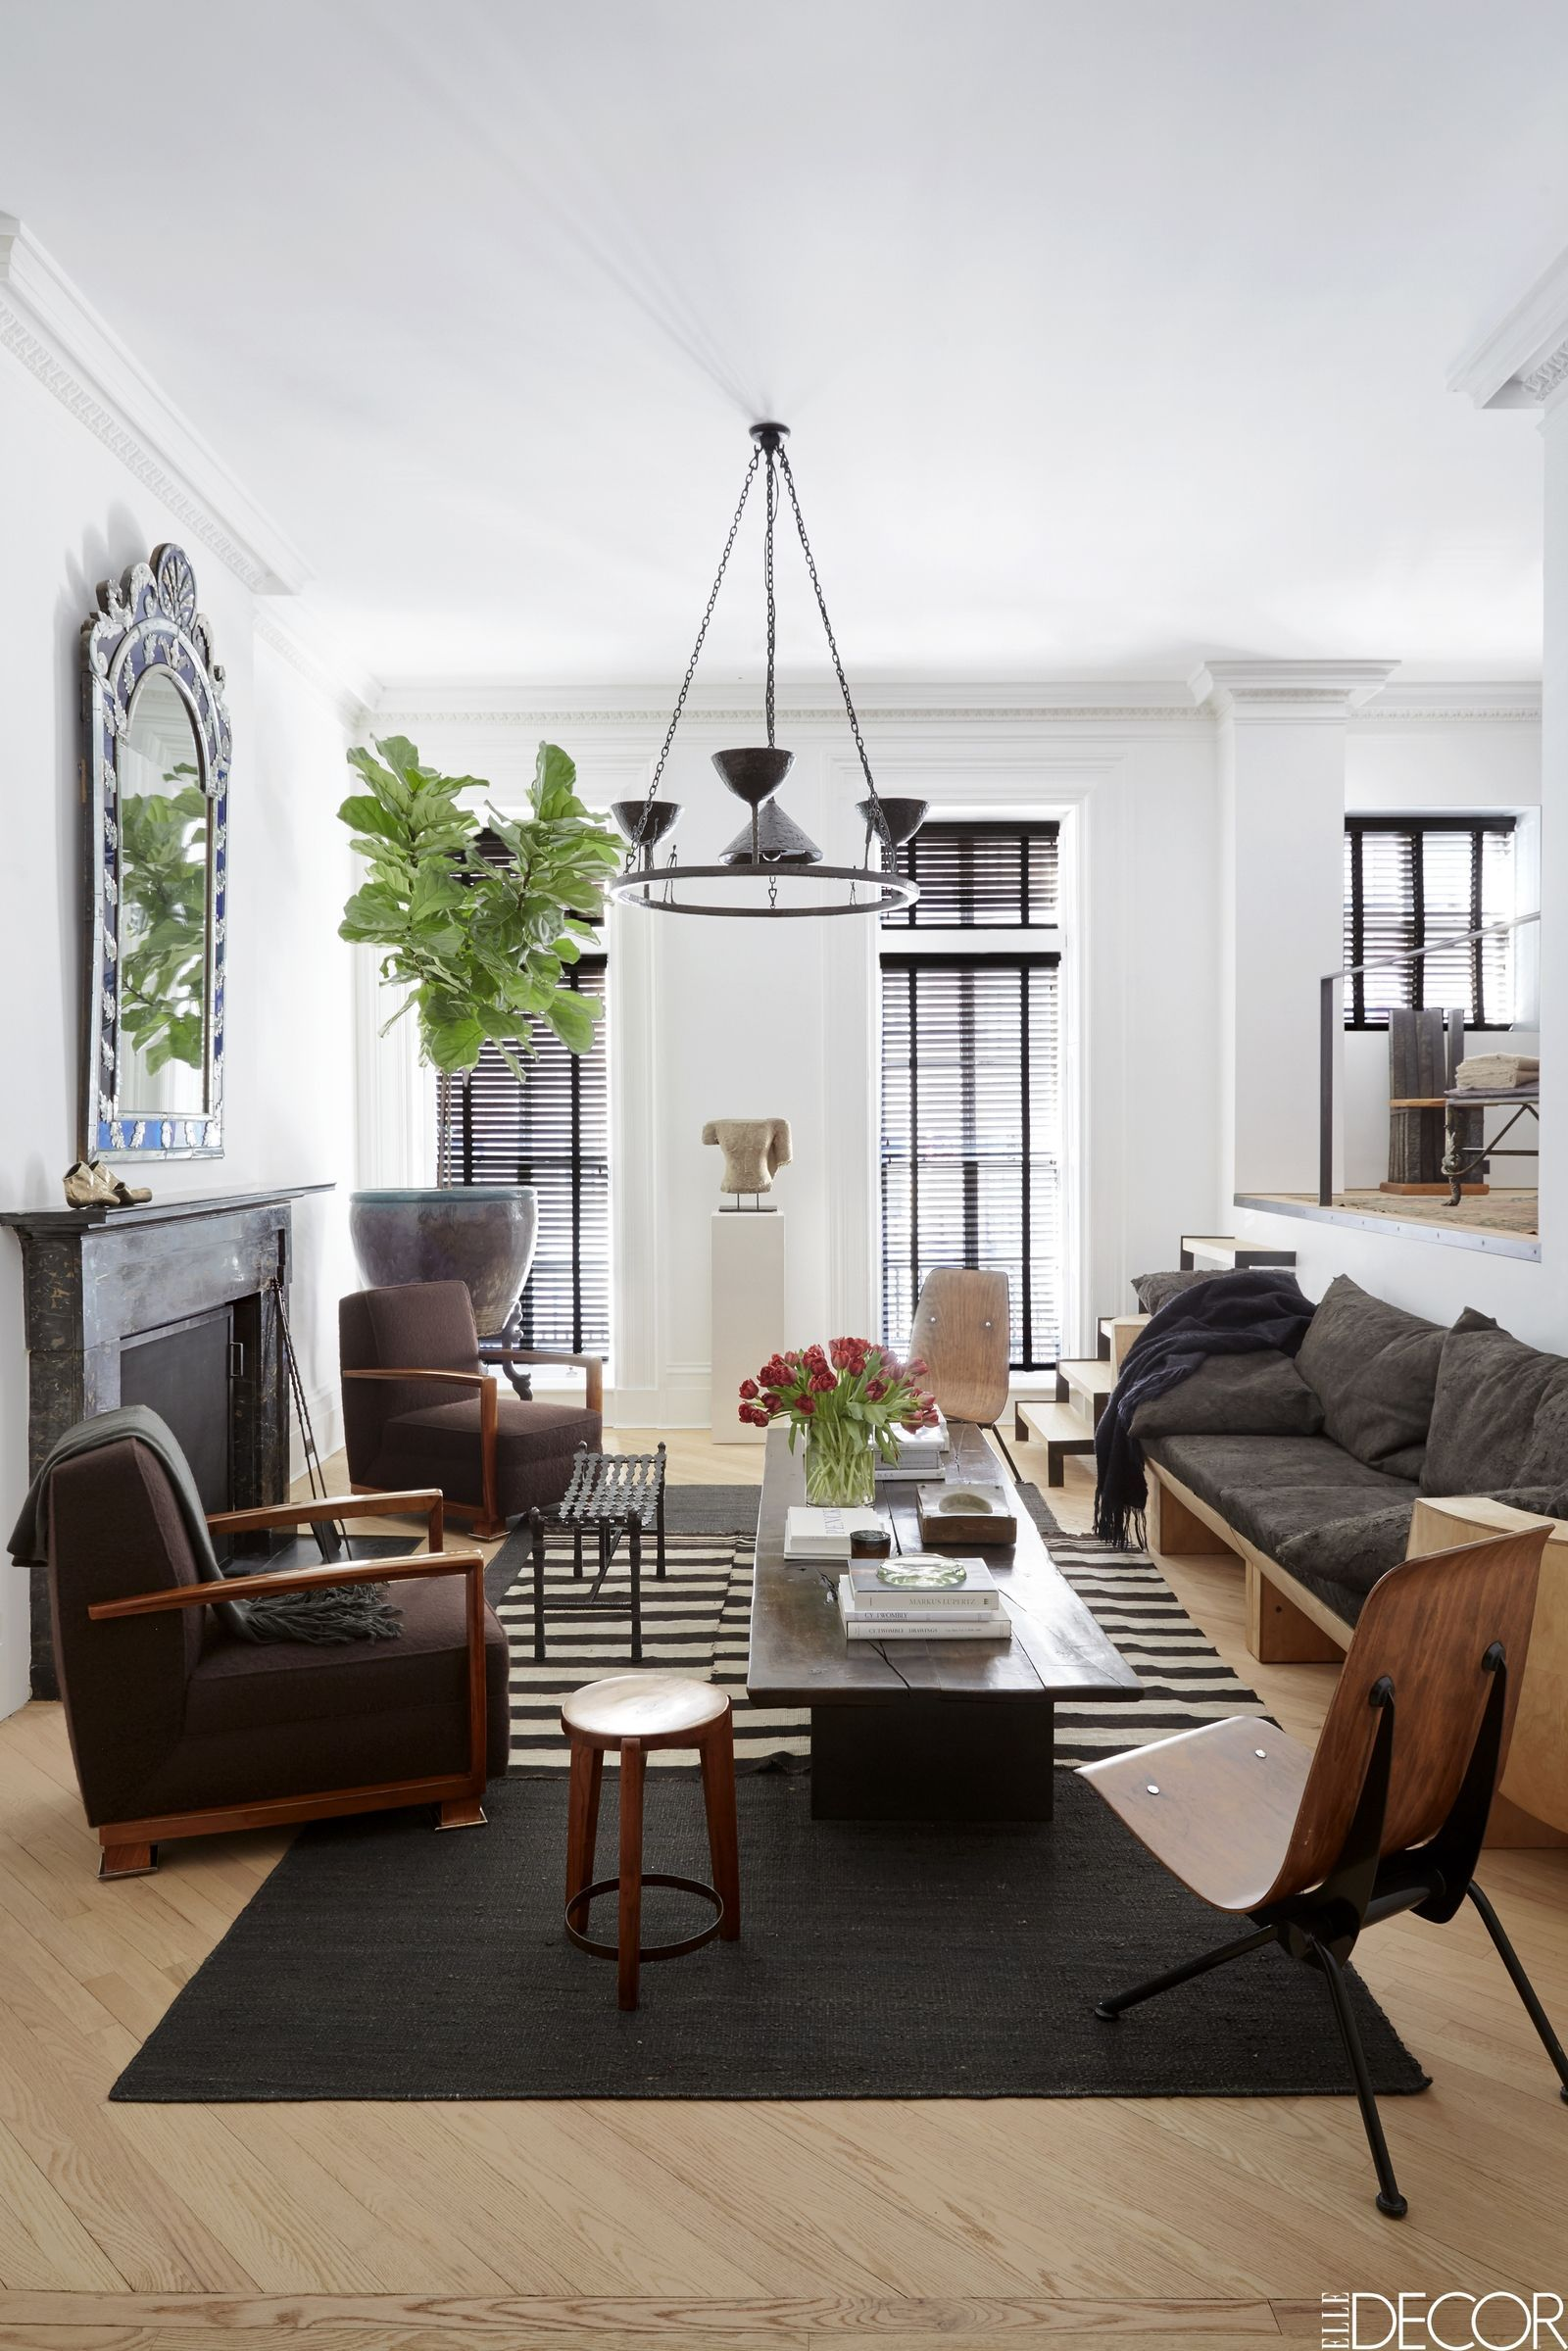 HOUSE TOUR A New York City Apartment With Laid Back LA Vibes